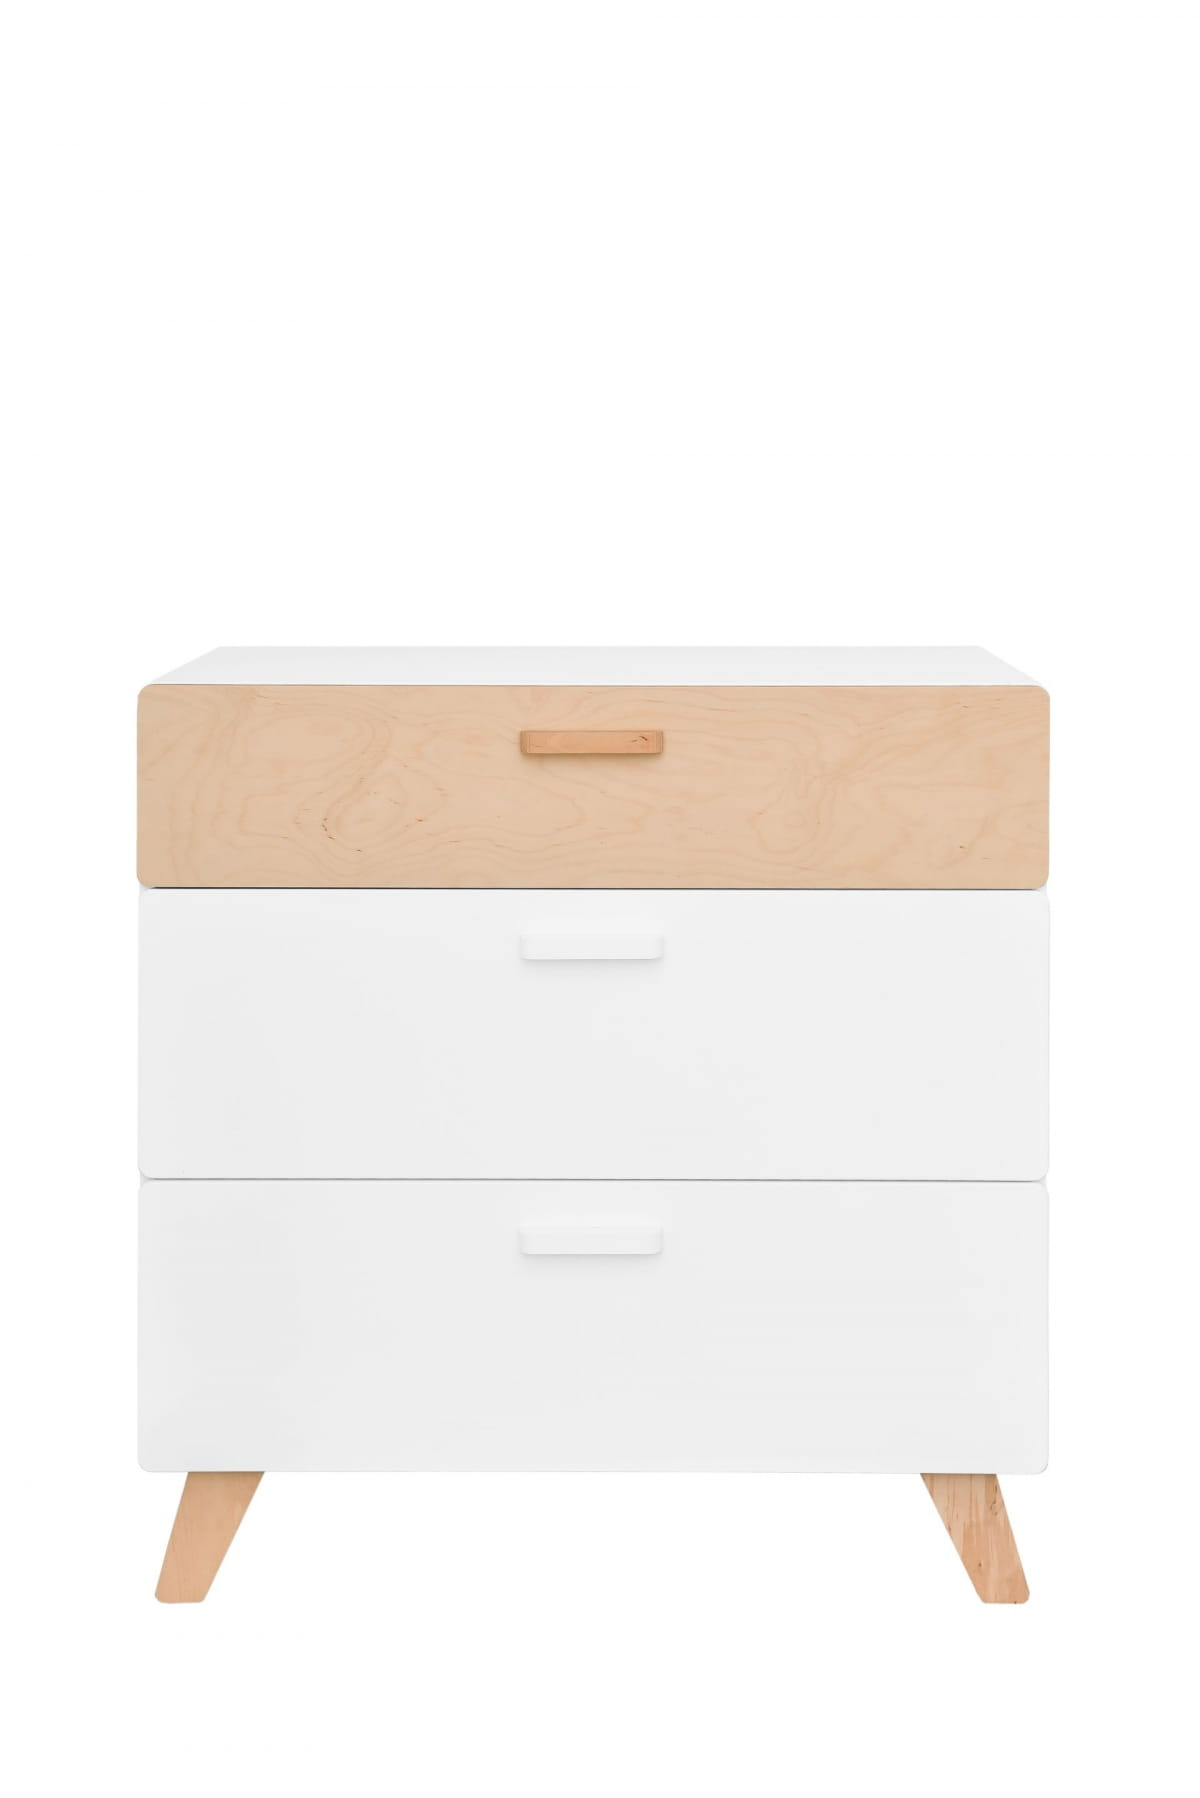 Hoppa_chest_of_drawers_01.jpg